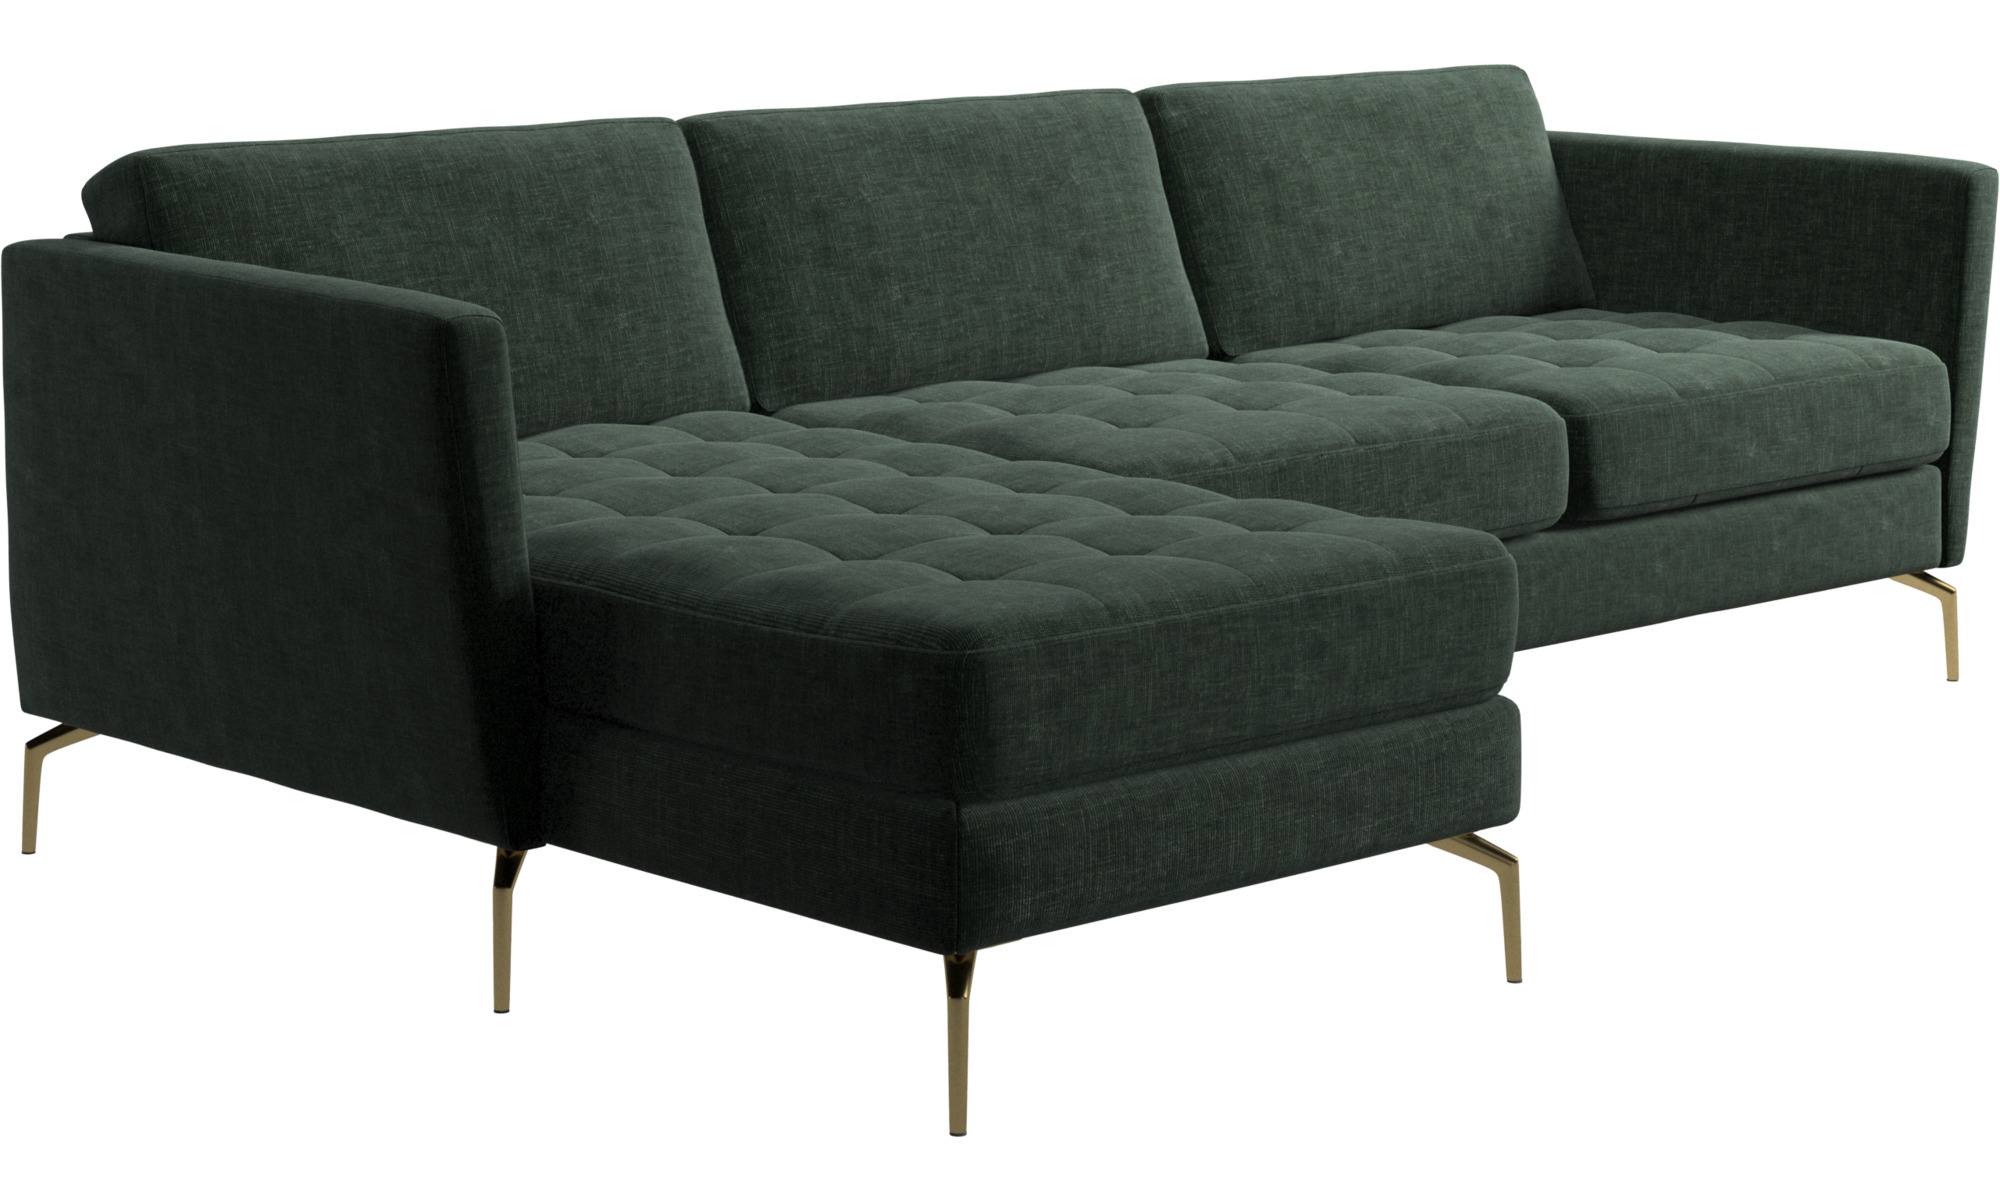 Chaise Lounge Sofas Osaka Sofa With Resting Unit Tufted Seat Green Fabric